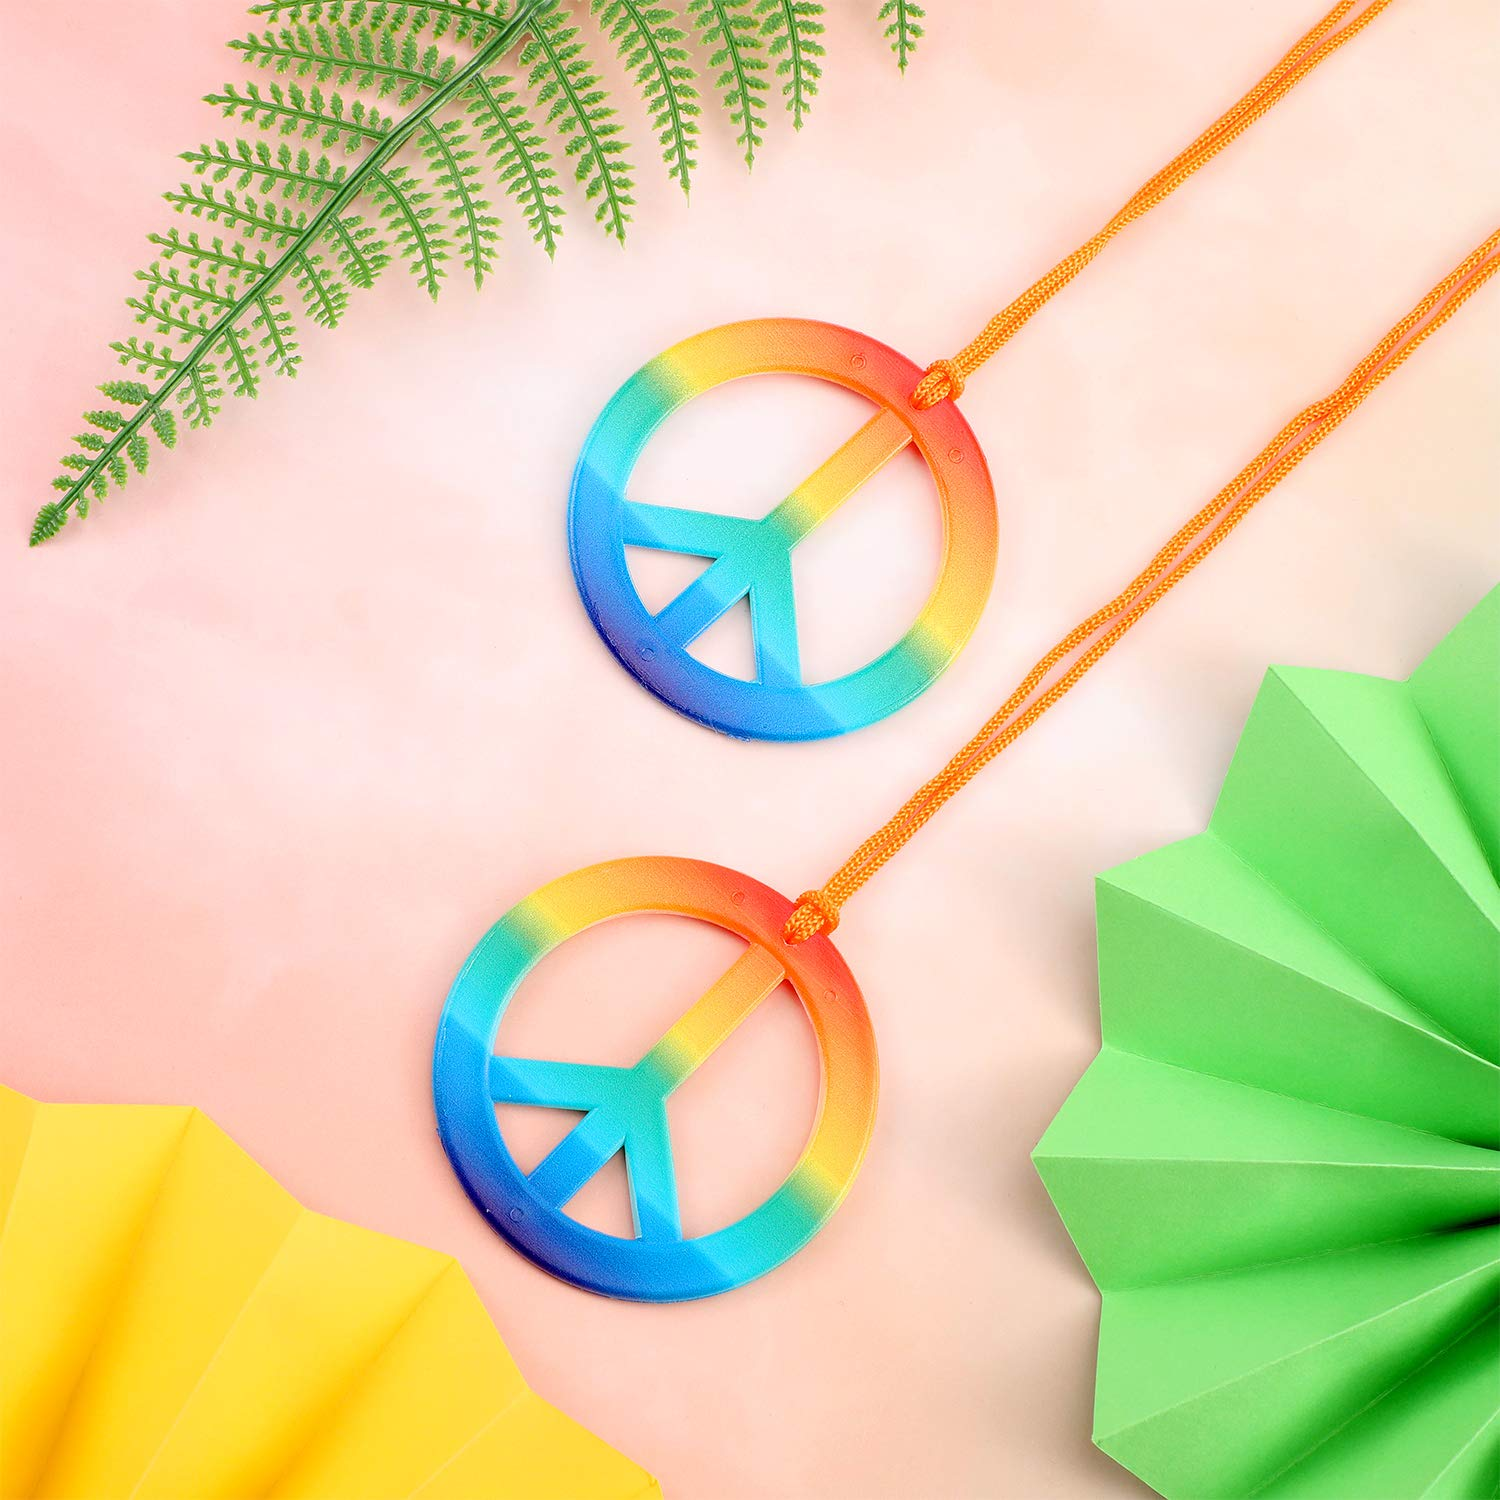 Silver Color and Rainbow Color meekoo 12 Pieces Peace Sign Necklace Peace Symbol Pendant Necklace 60s 70s Party Hippie Pendant Accessories for Party Daily Costume Accessory